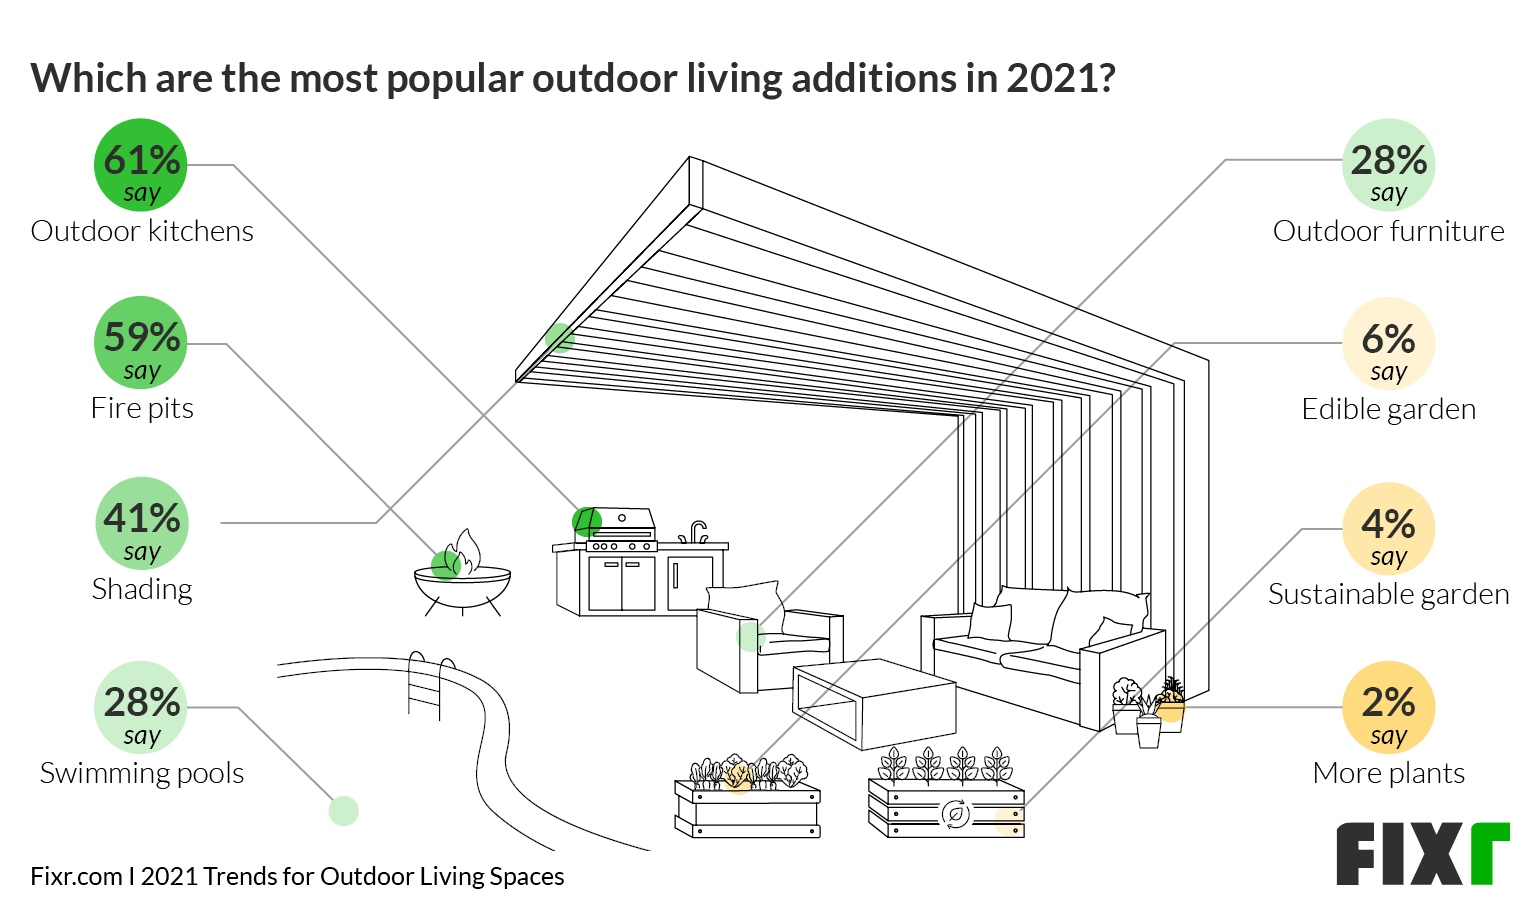 Most popular outdoor living features in 2021 - outdoor kitchens, fire pits, shading, siwmming pools